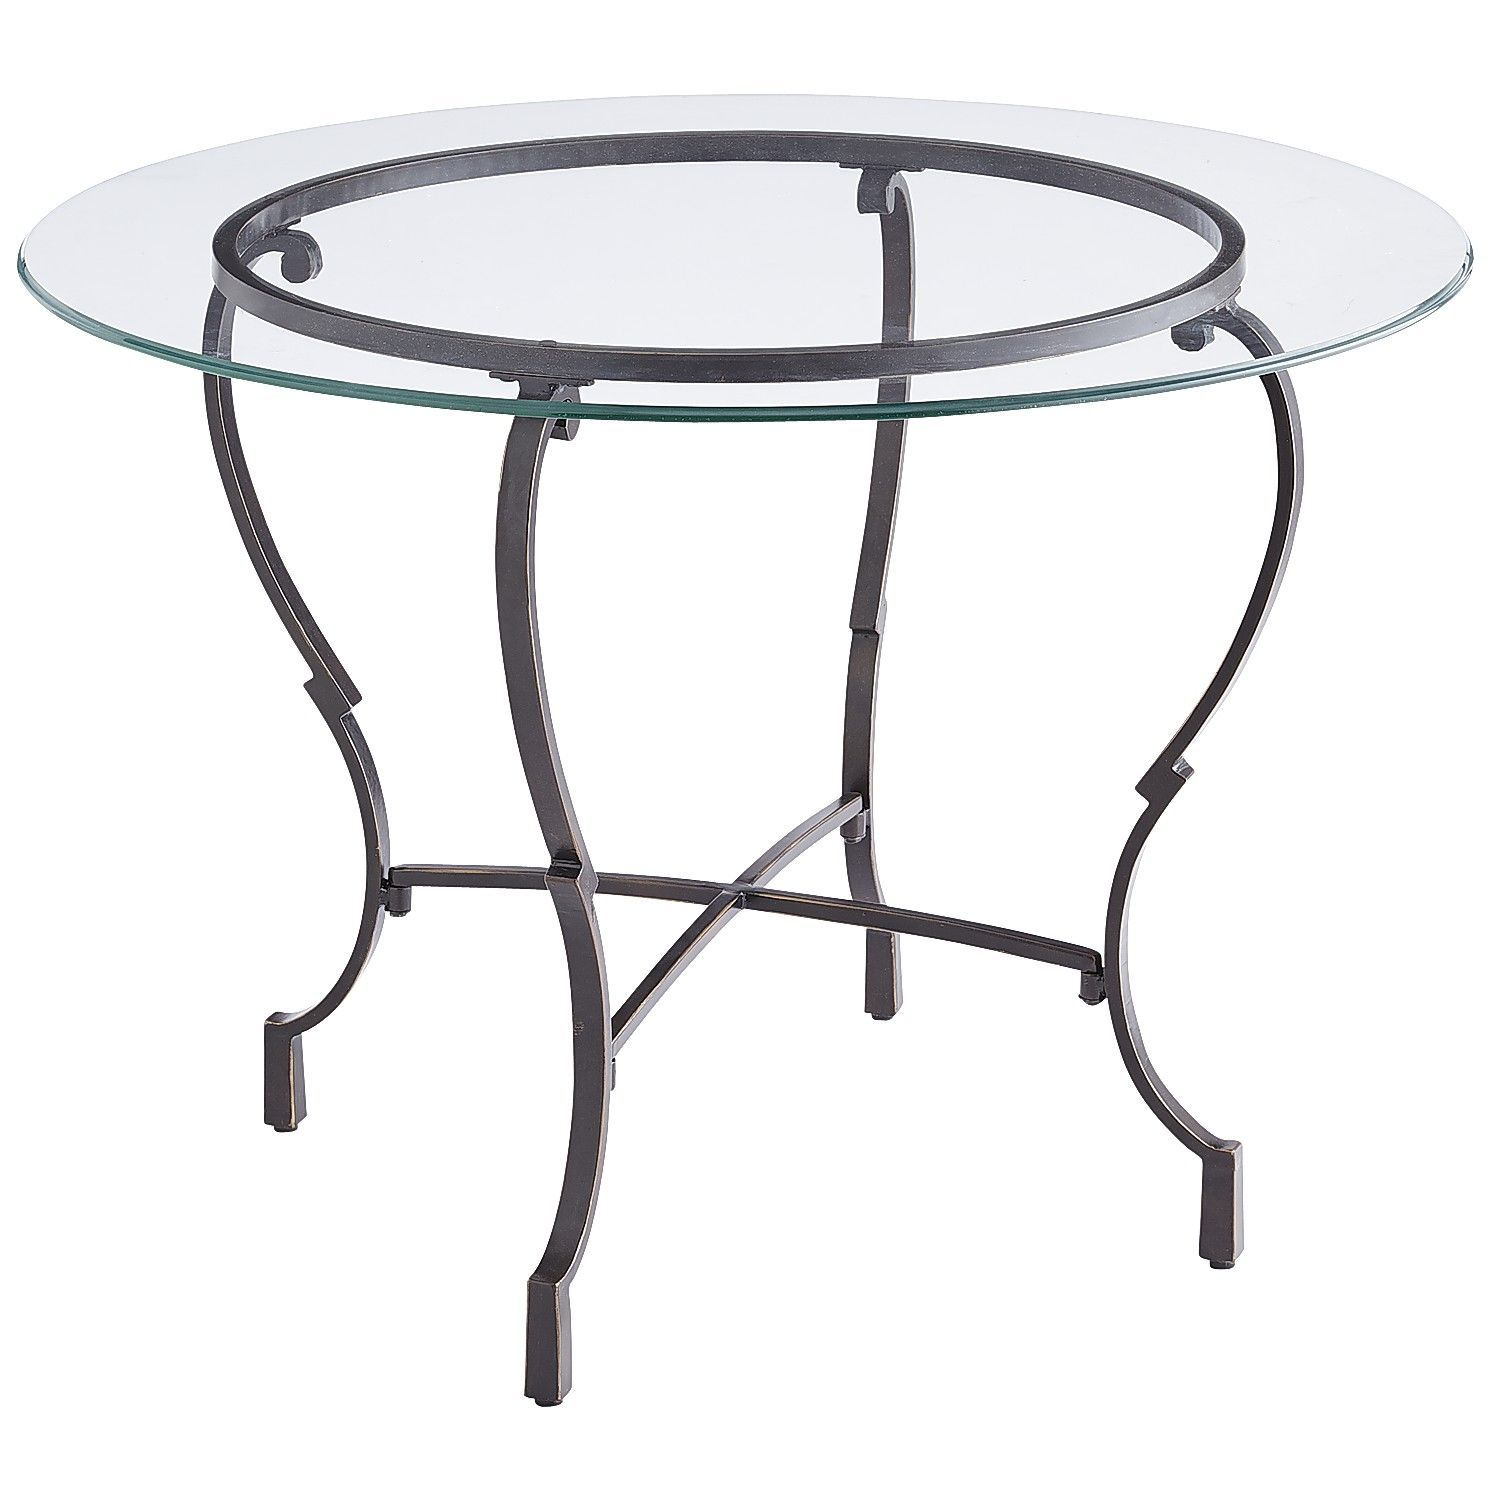 Chasca Dining Table Base   Pier 1 Imports   Kitchen   Pinterest